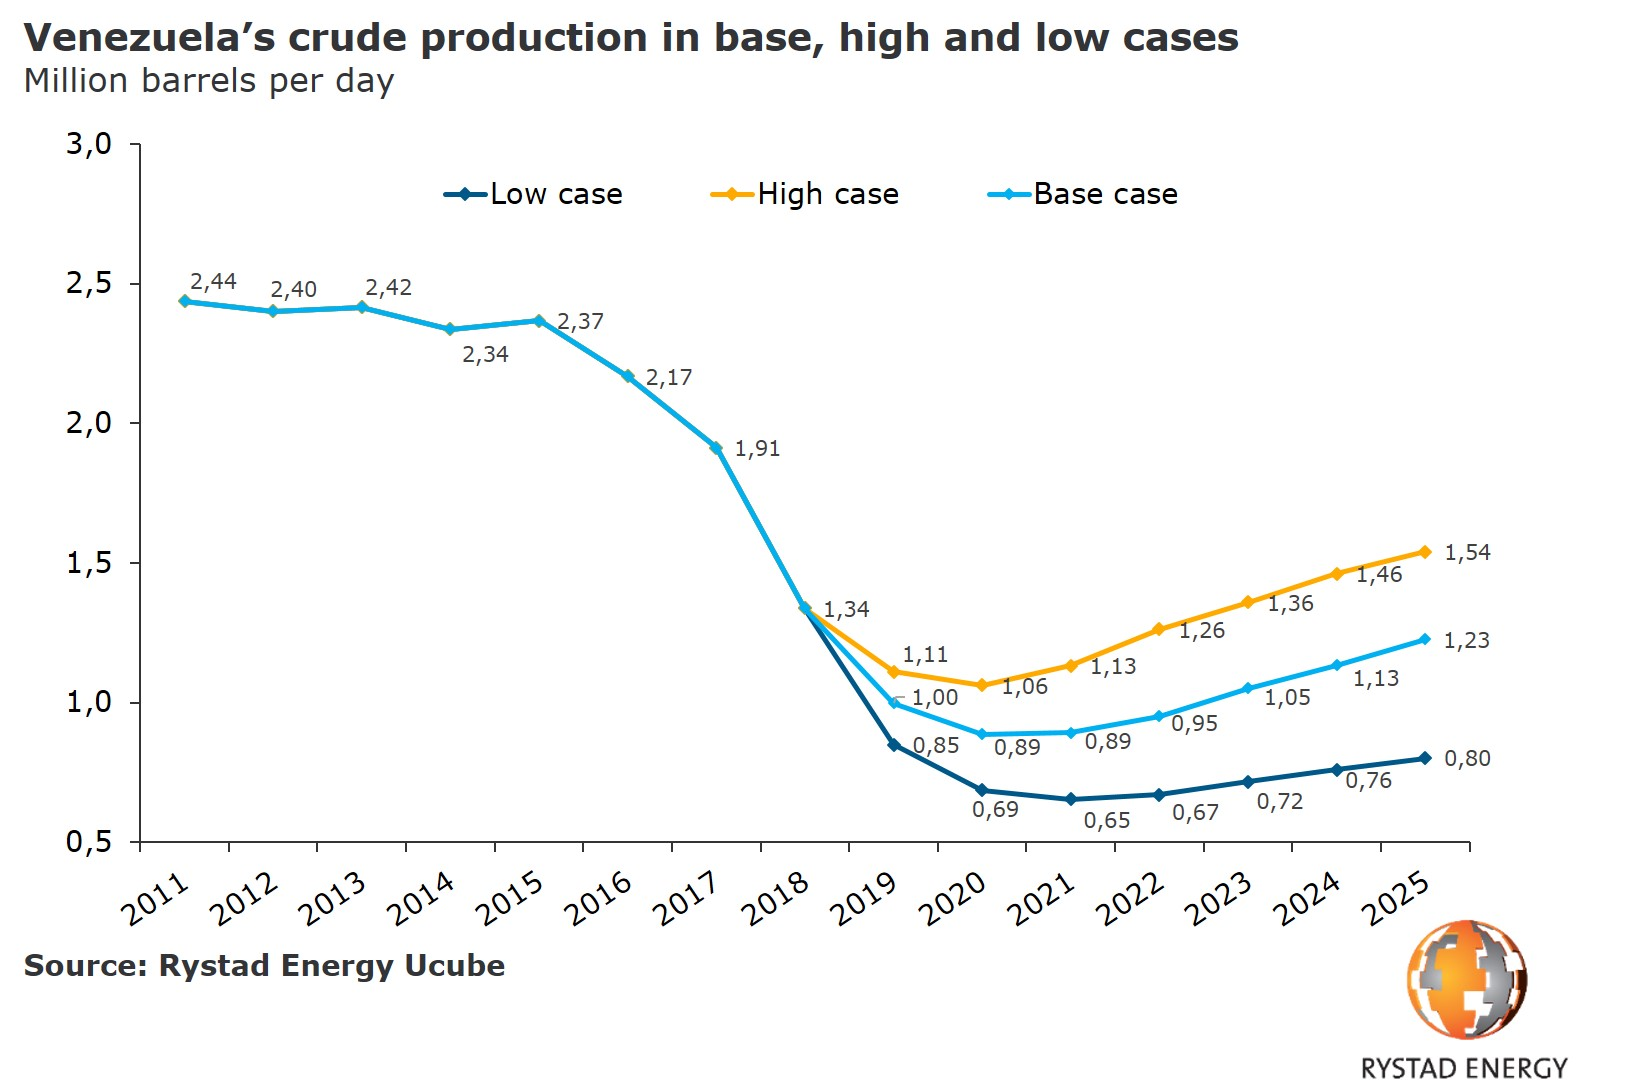 A graph showing Venezuela`s crude production in base, high and low cases in Million barrels per day from 2011 to 2025. Source: Rystad Energy UCube